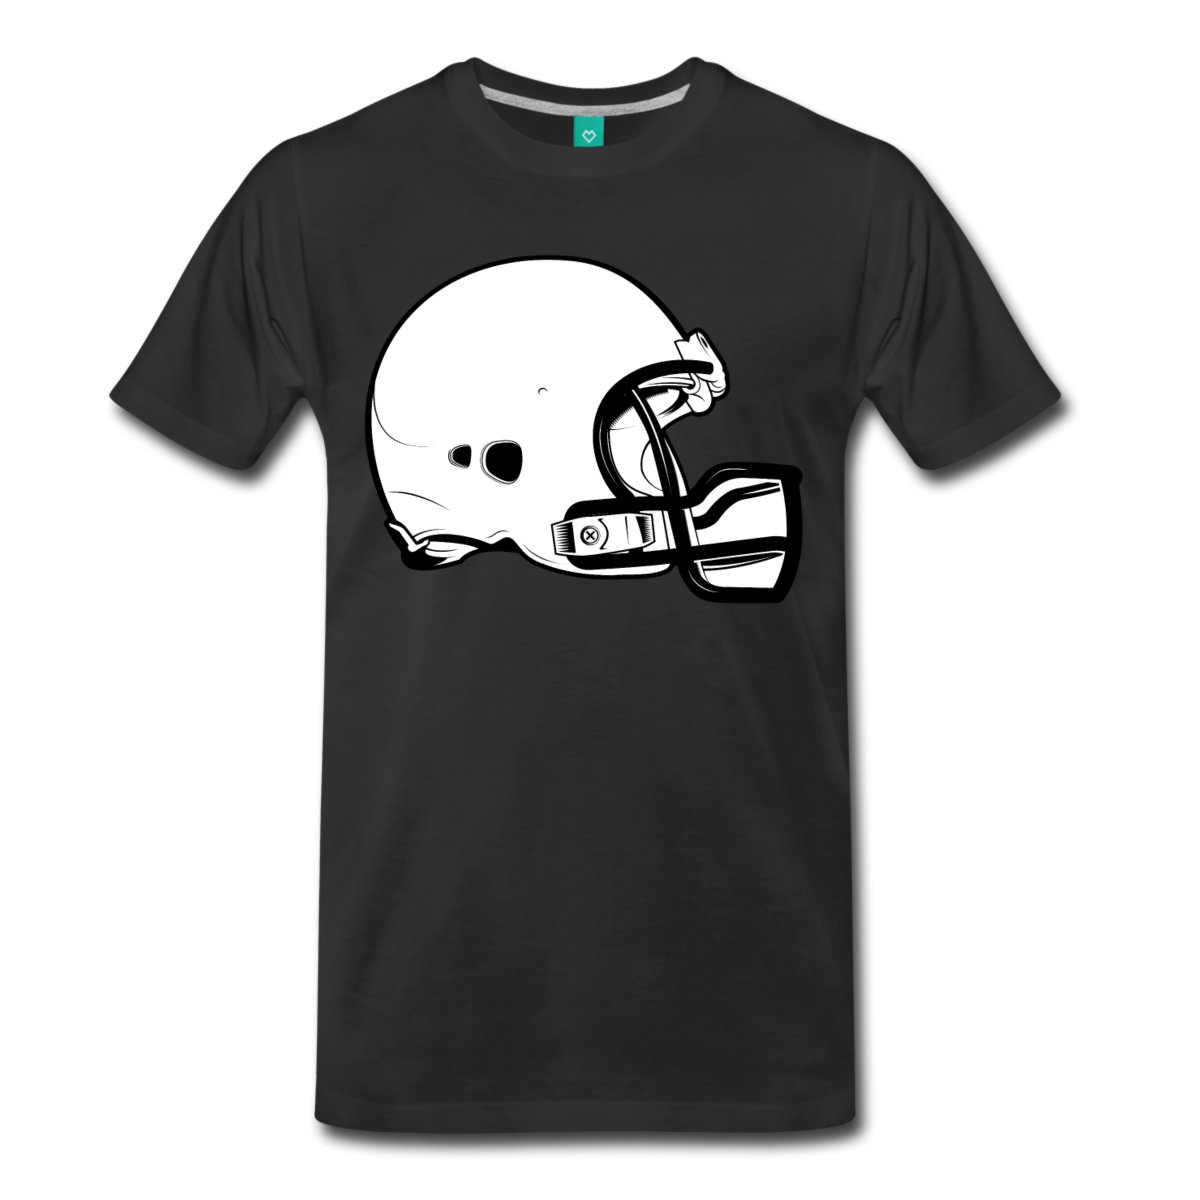 Footballer Helmet Mens T-Shirt Short Sleeve Summer Style Printed T-Shirt Pure Cotton Men Short Sleeve T Shirt Funny Print